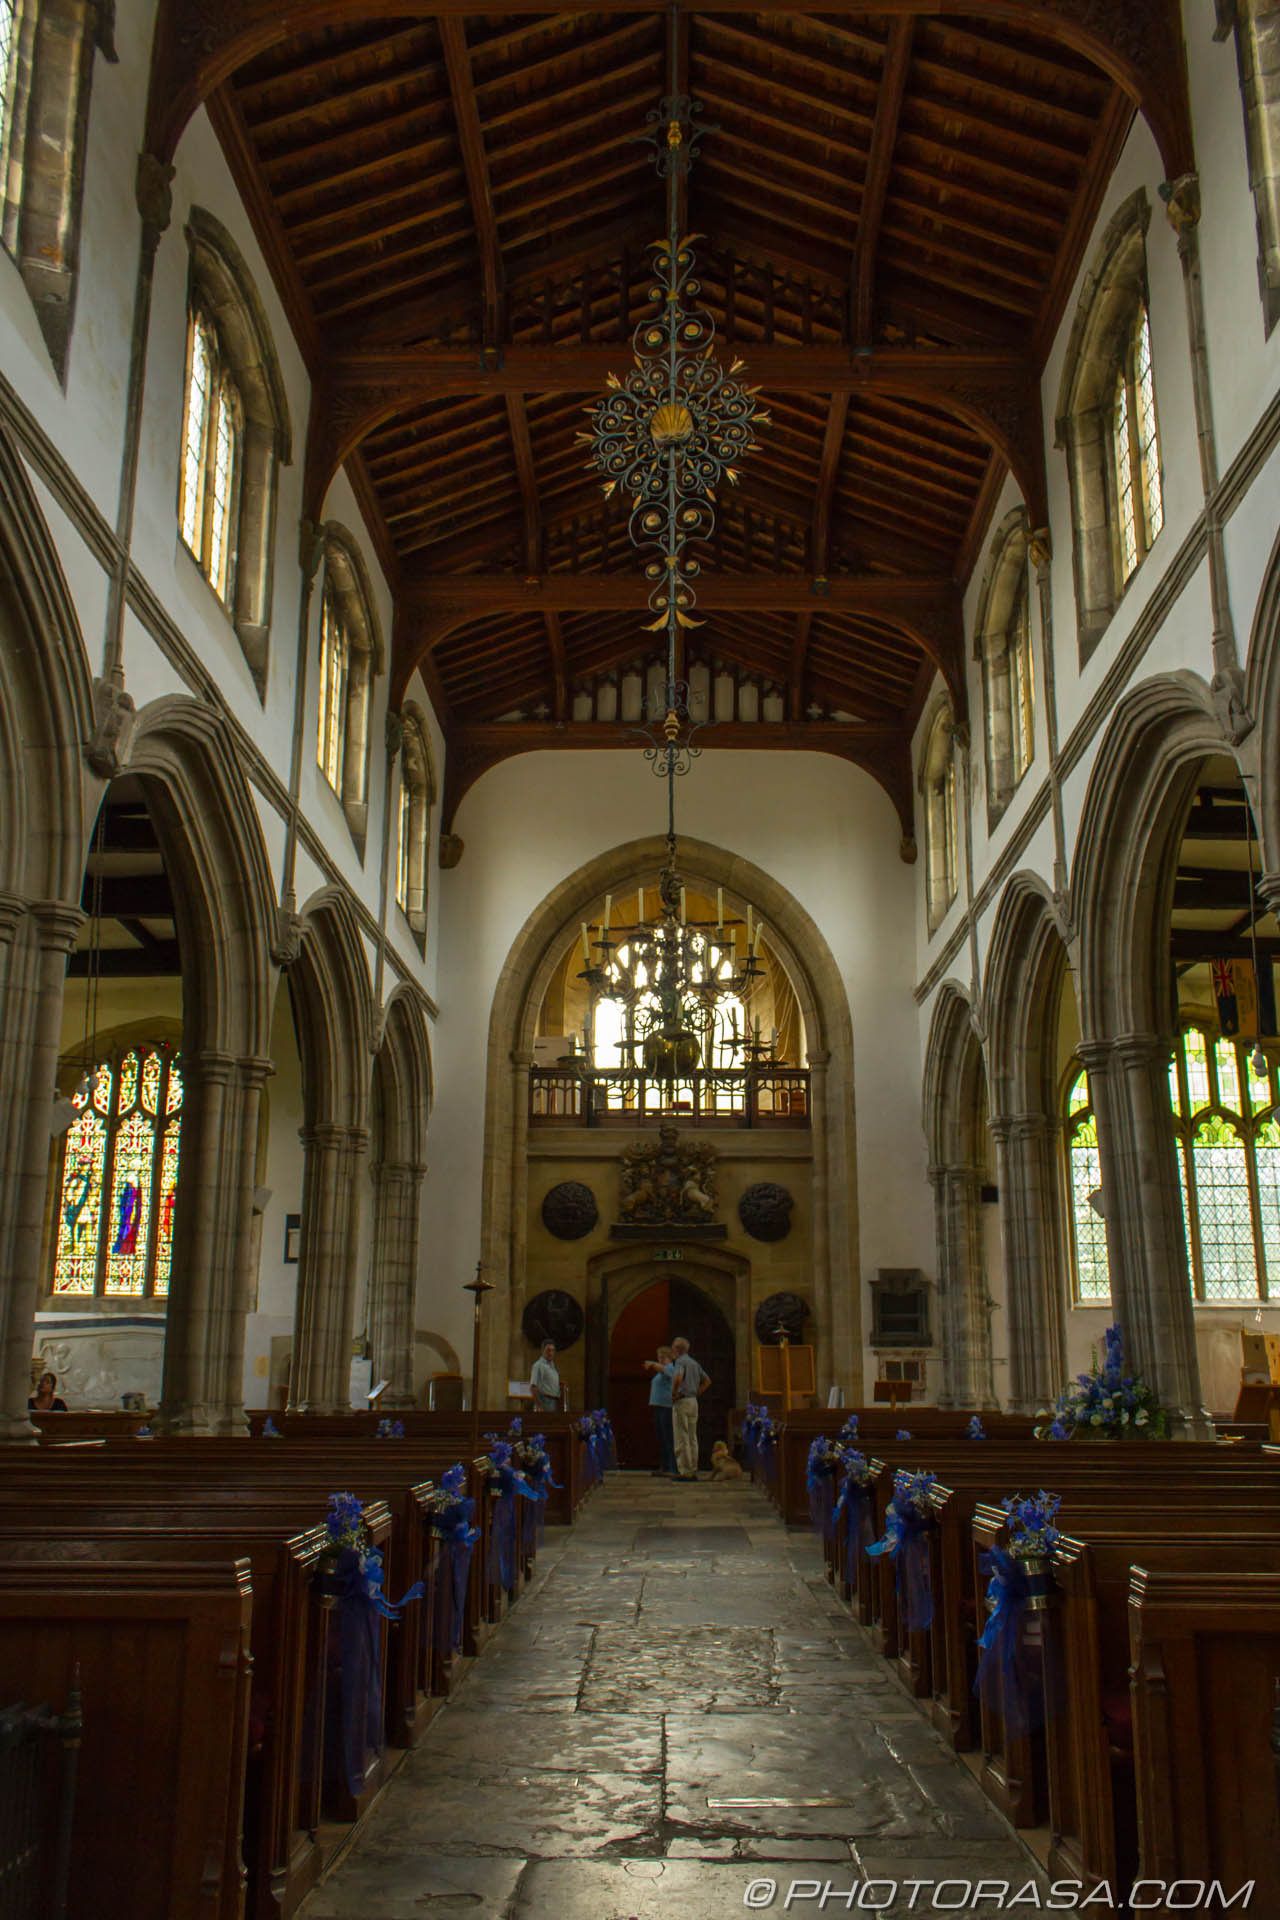 http://photorasa.com/st-dunstans-church-cranbrook/cranbrook-church-hall/